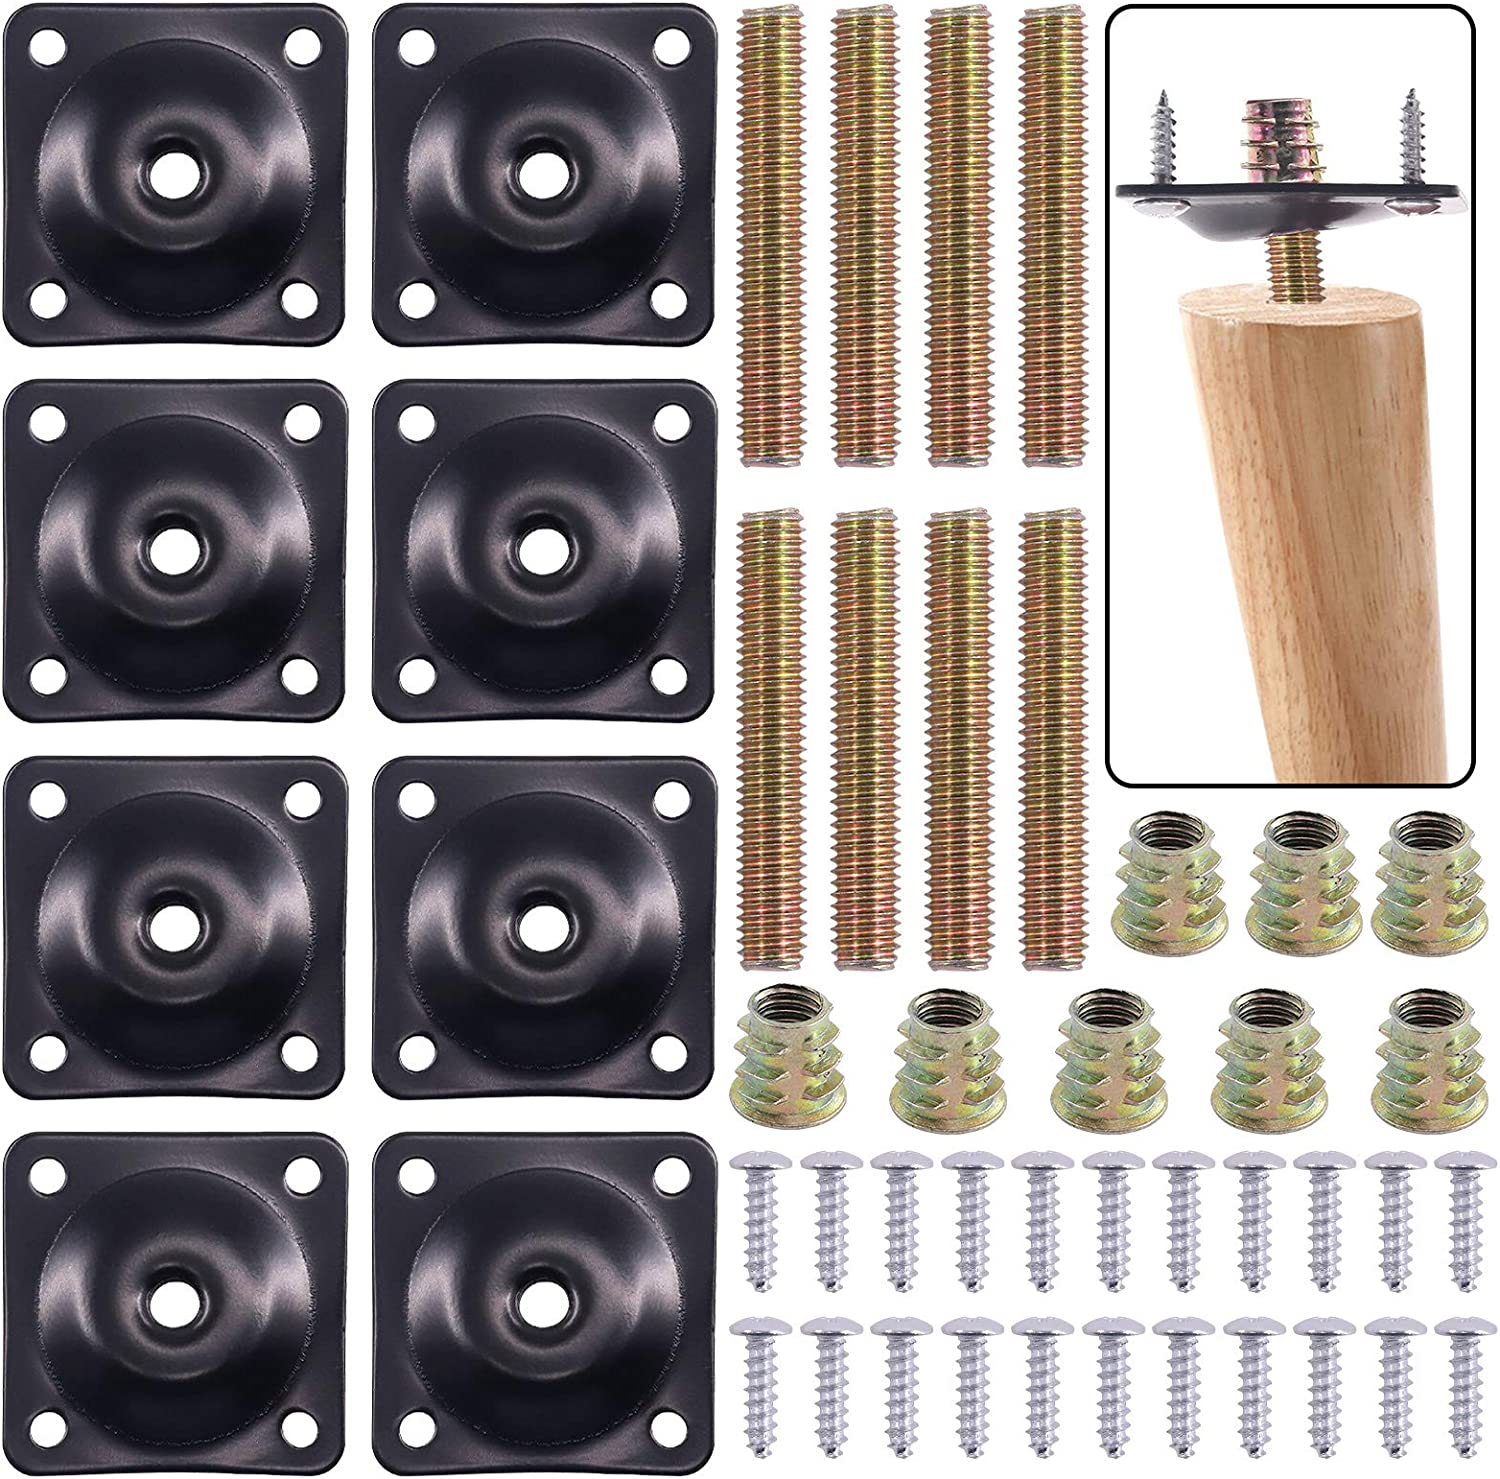 Swpeet 8 Sets Black 12 Degree Angled Leg Mounting Plates with Hanger Bolts Screws, Furniture Leg Attachment Plates Industrial Strength T-Plate M8 Sofa Legs with Hanger Bolts